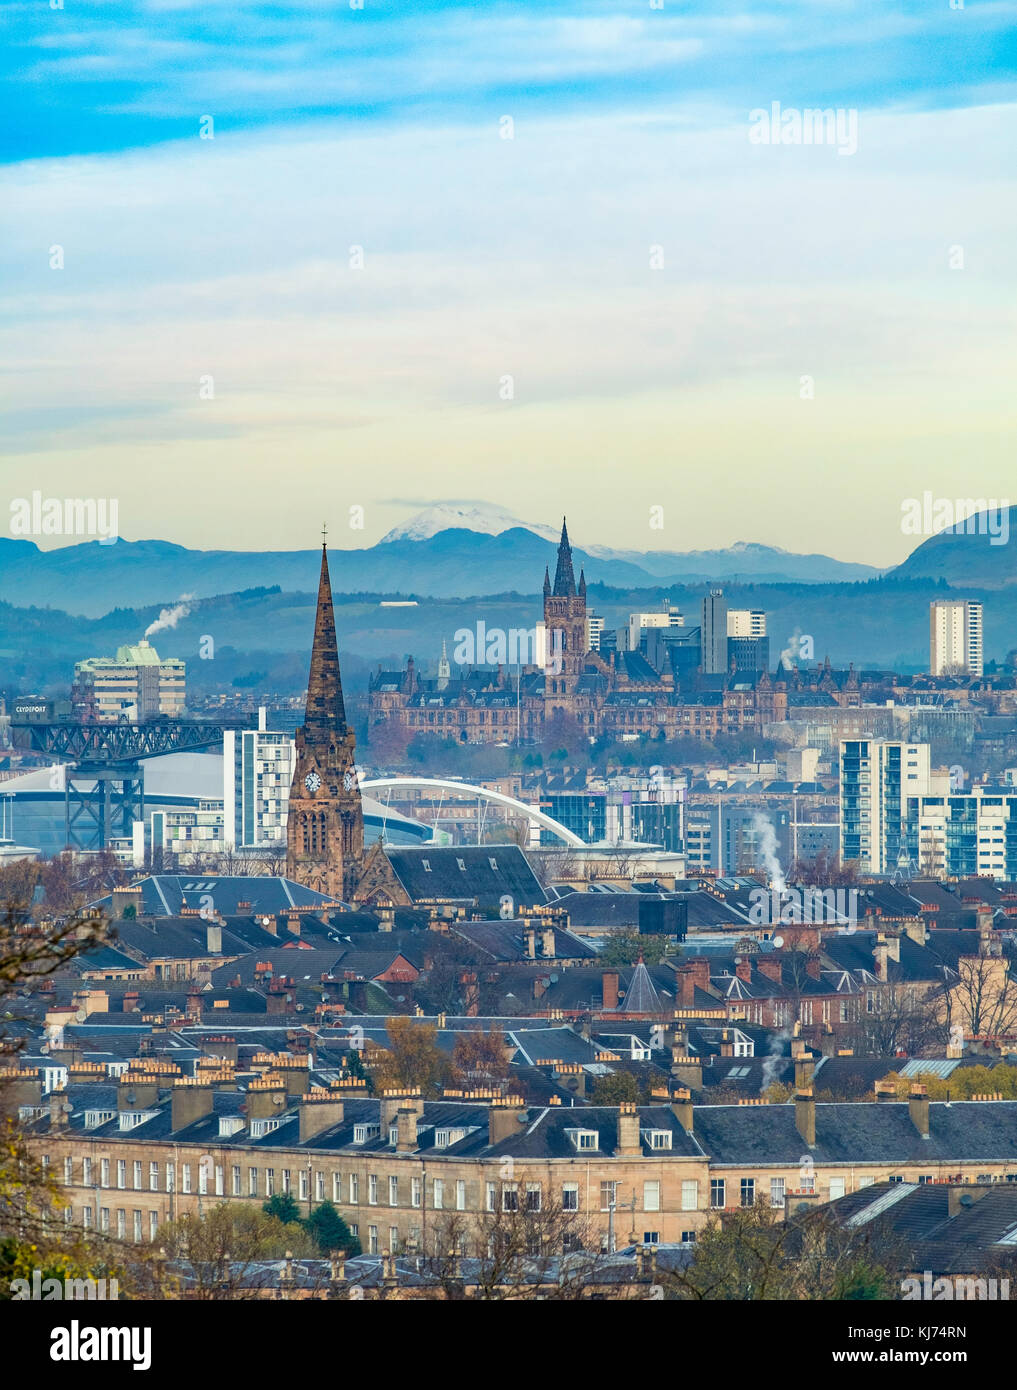 Skyline of Glasgow from Queens Park in Southside of the city. Scotland, United Kingdom - Stock Image